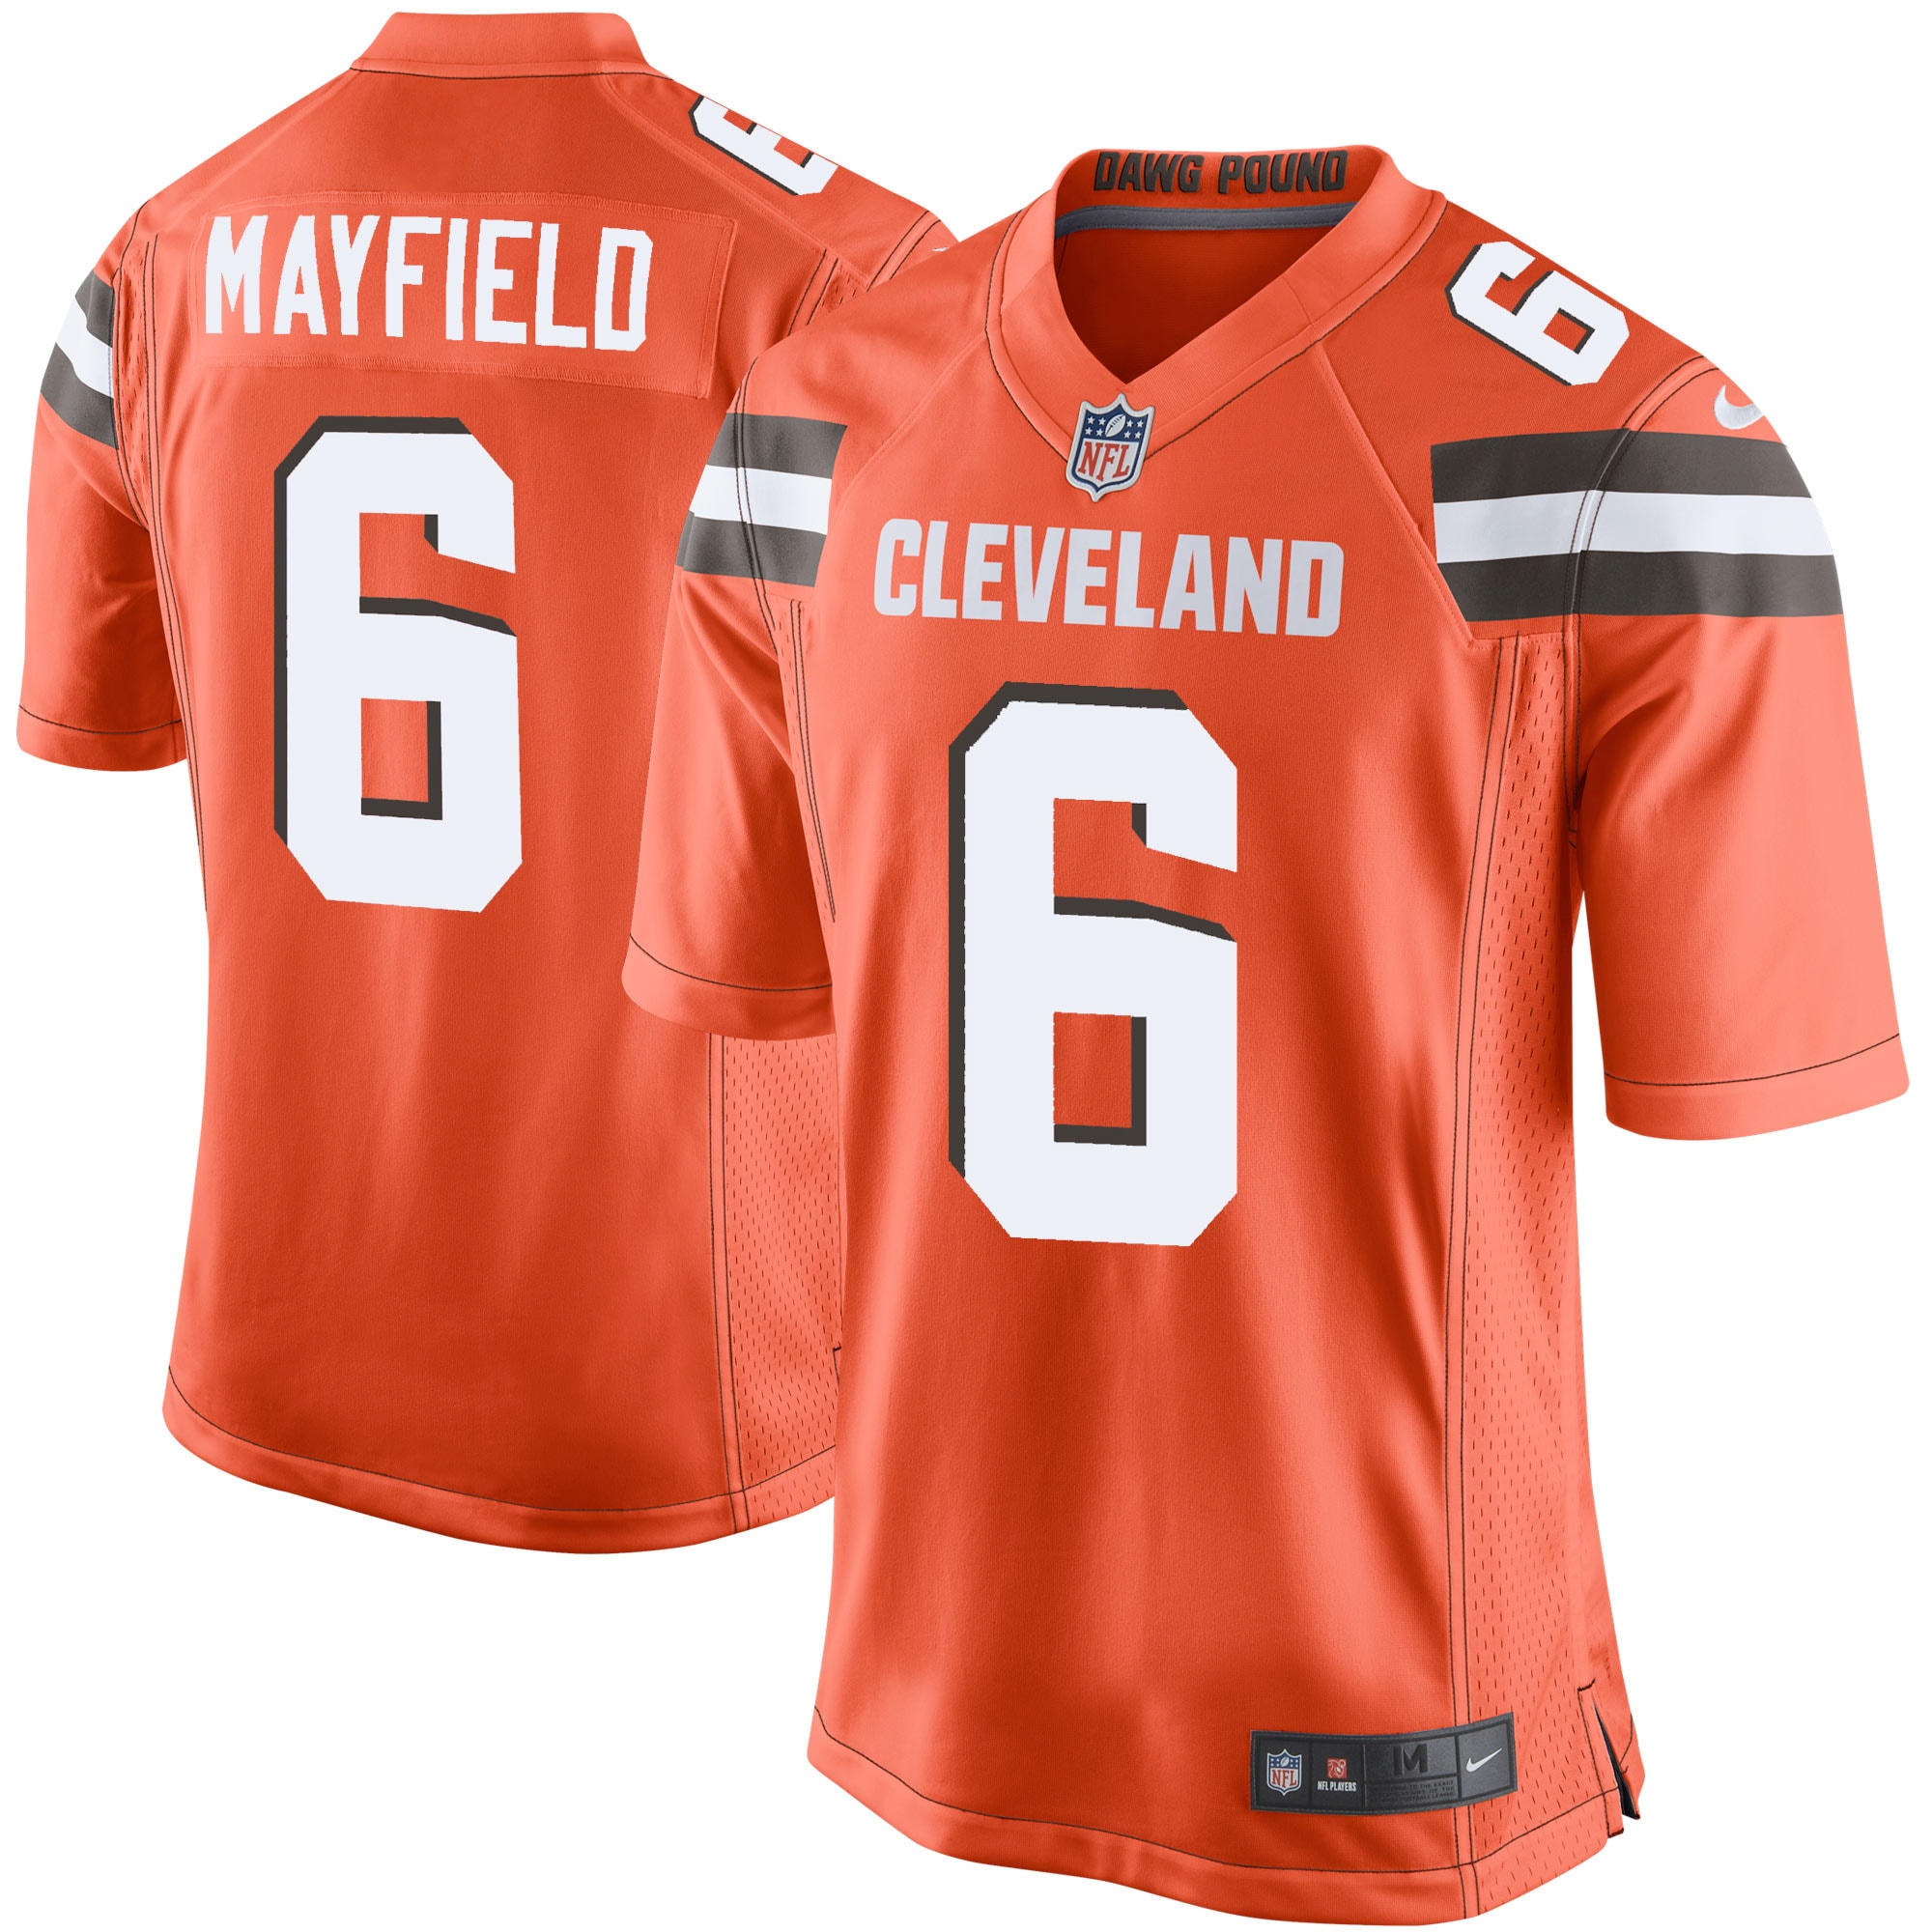 Baker Mayfield Cleveland Browns Nike Youth Player Game Jersey - Orange